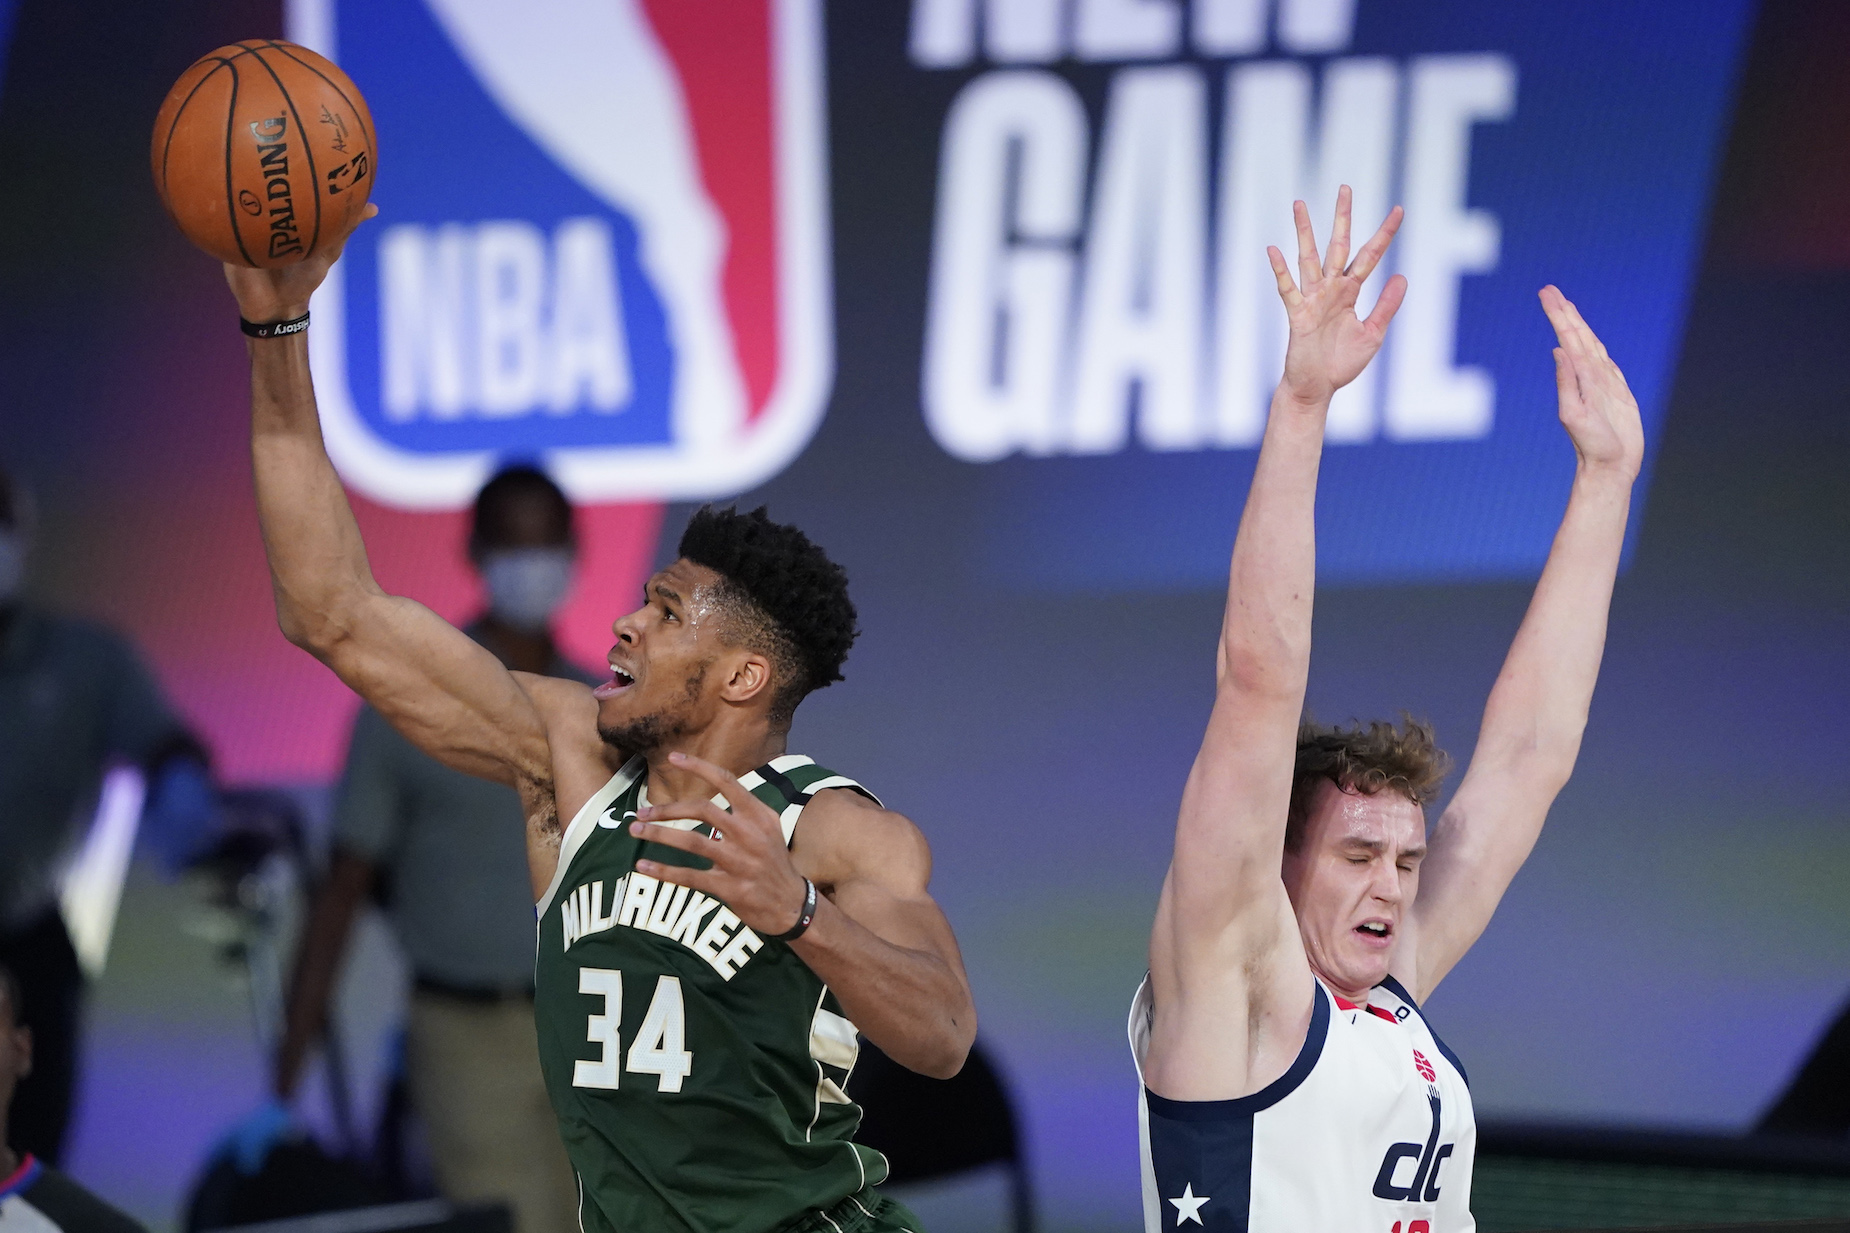 By headbutting his opponent, Giannis Antetokounmpo showed a human side to his game.